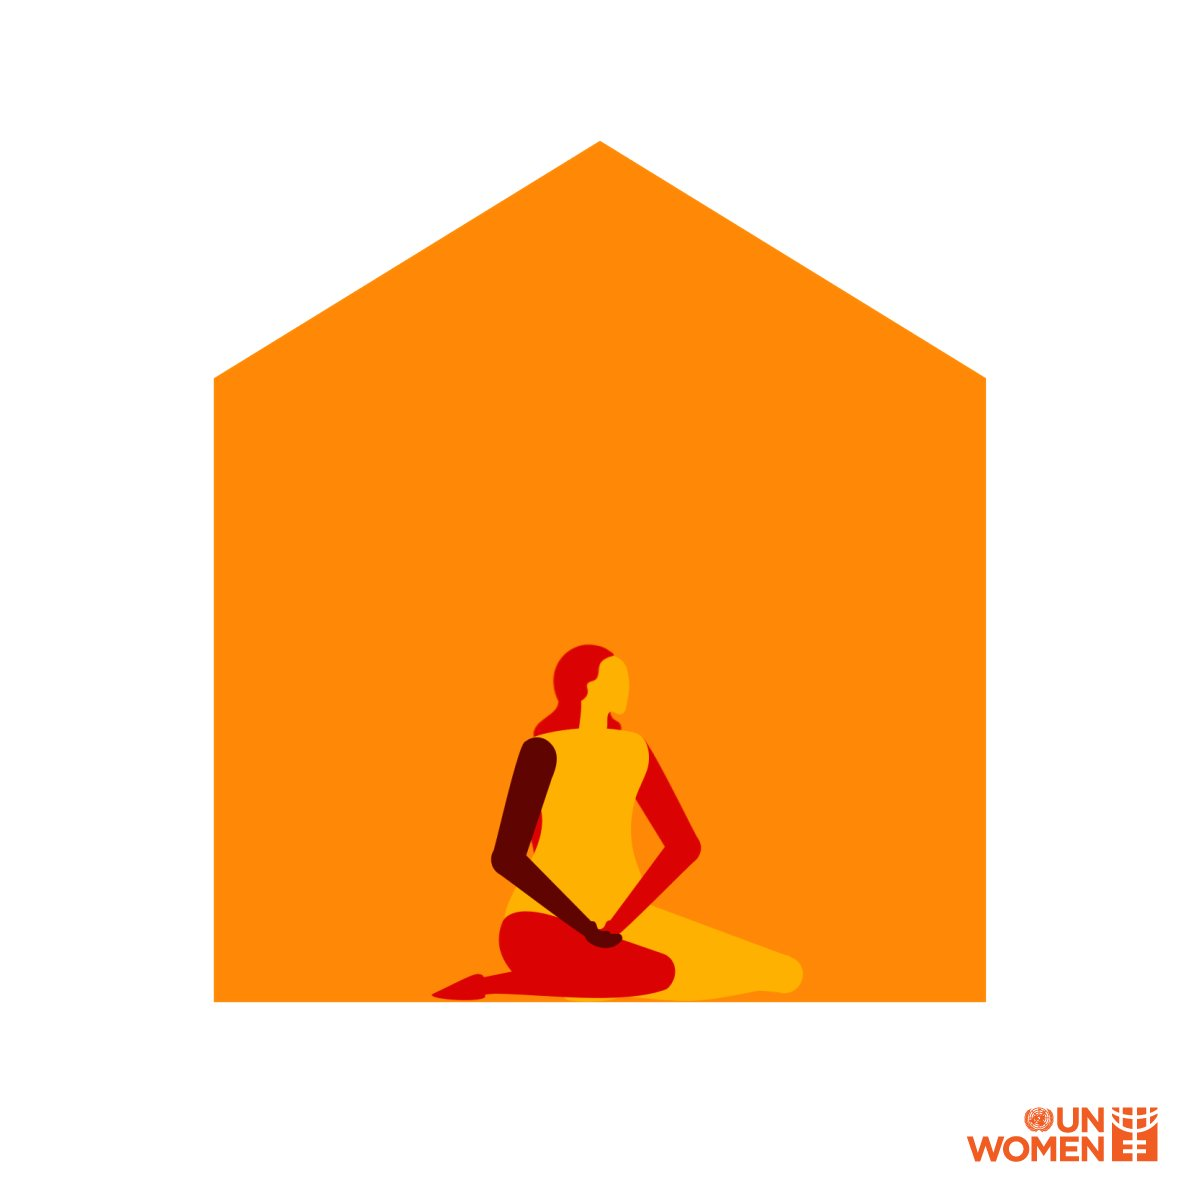 As people stayed home to stop the spread of #COVID19, reports of violence against women & girls began to rise, especially in humanitarian settings.  This #16Days of Activism, #orangetheworld to show you stand with survivors and their right to justice.